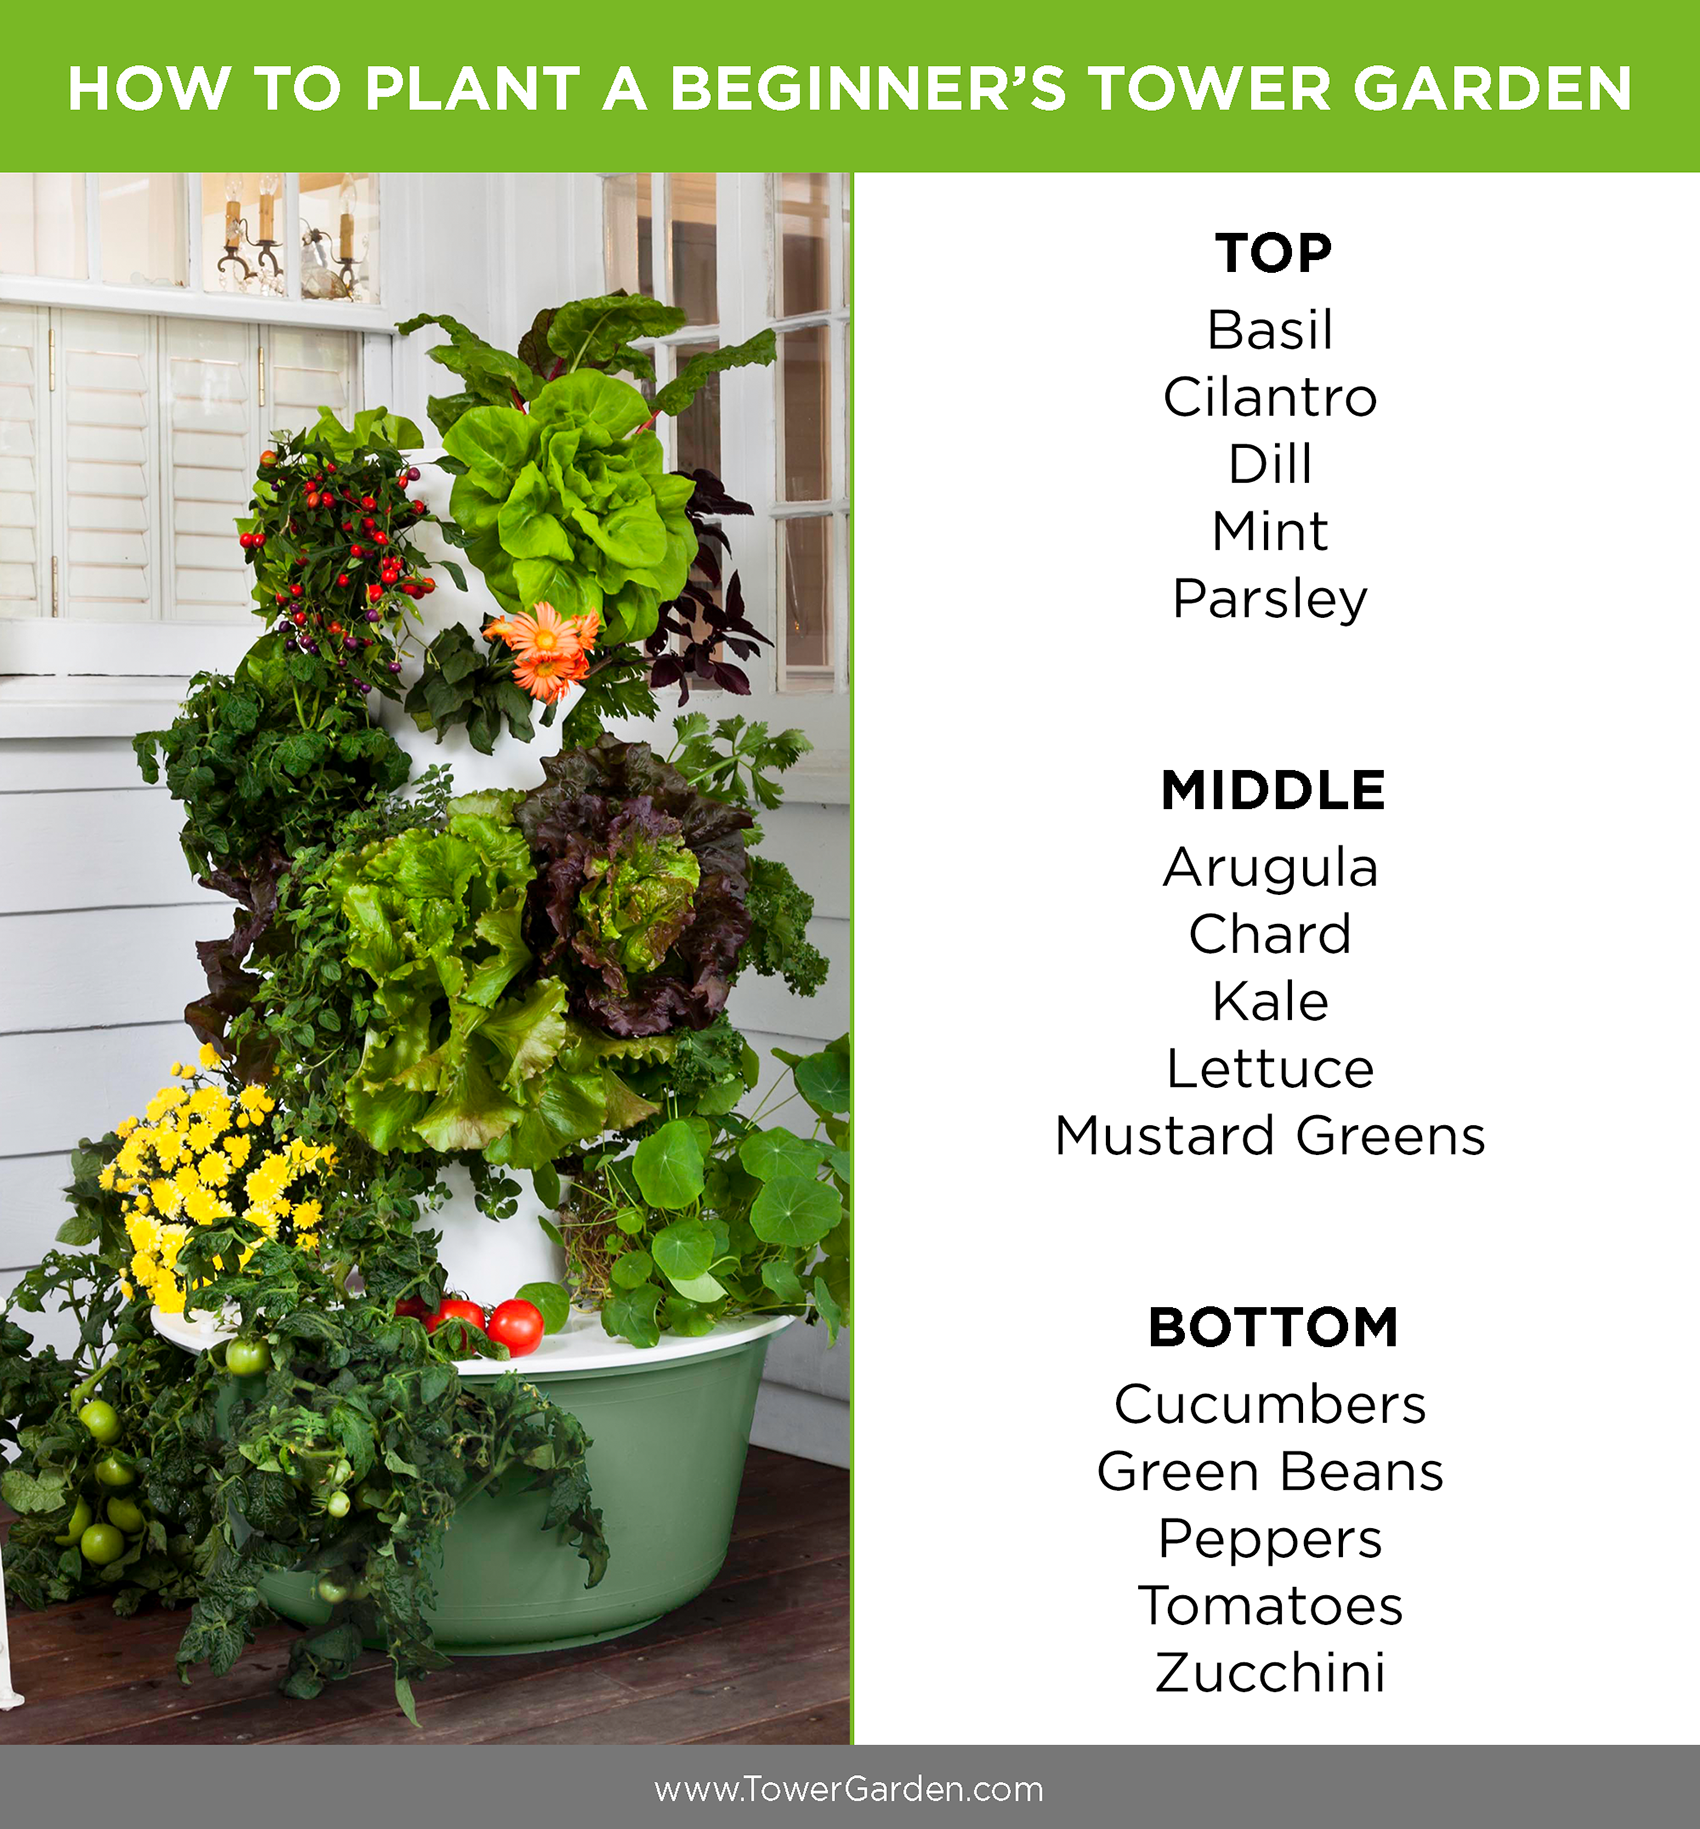 Beginner Tower Garden Planting Plan AEROPONIC. No Dirt. Grow Veggies And  Fruits With No Tilling, Or Preparing Soil. I Love This Because You Can Grow  Totally ...